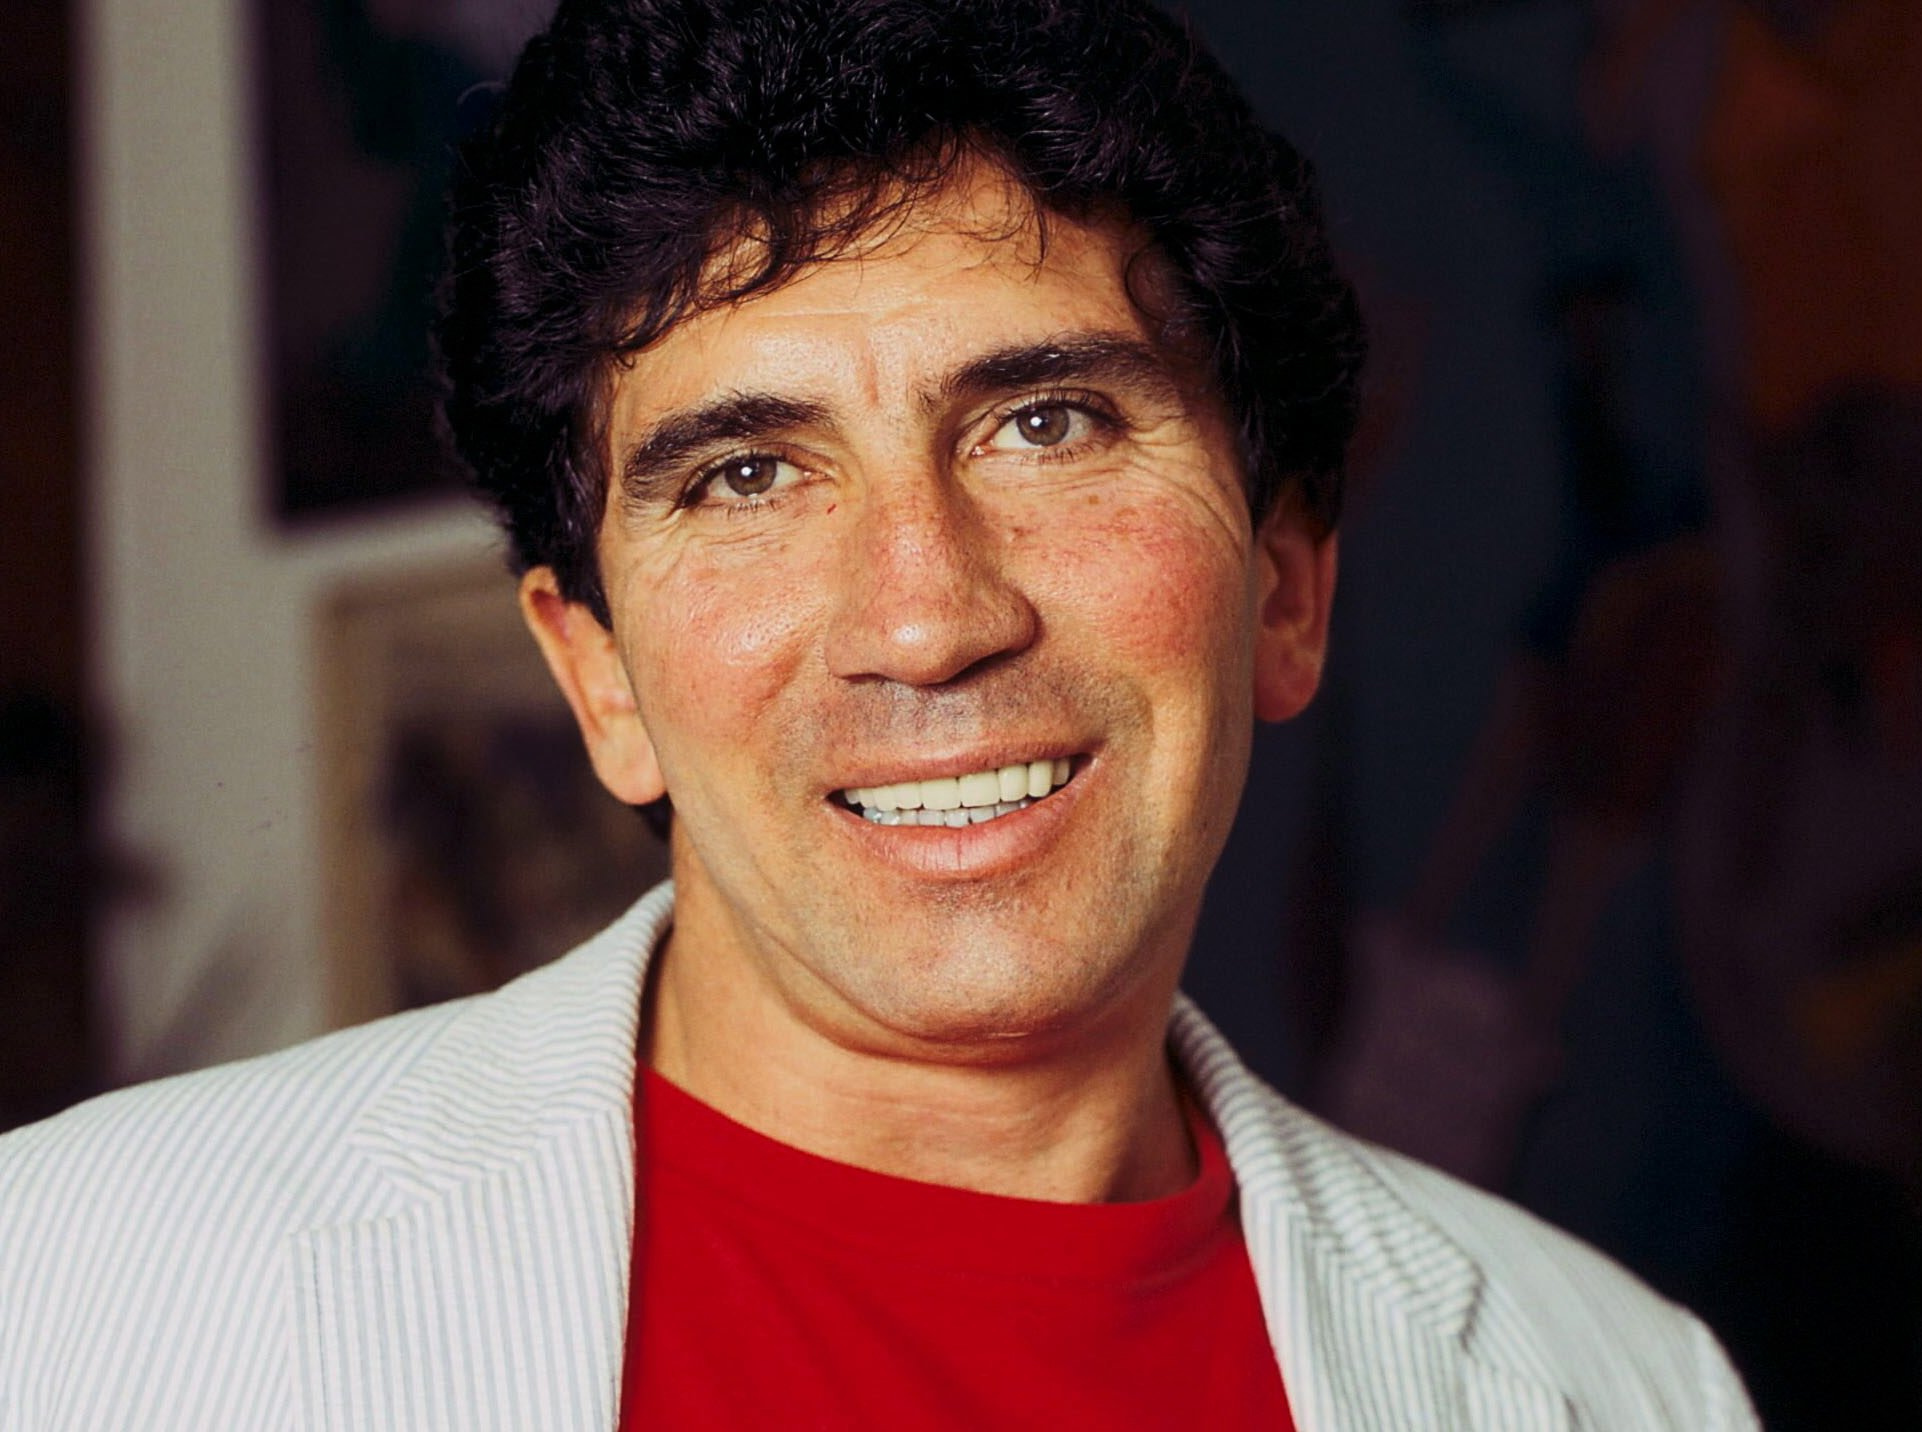 biography Reinaldo Arenas